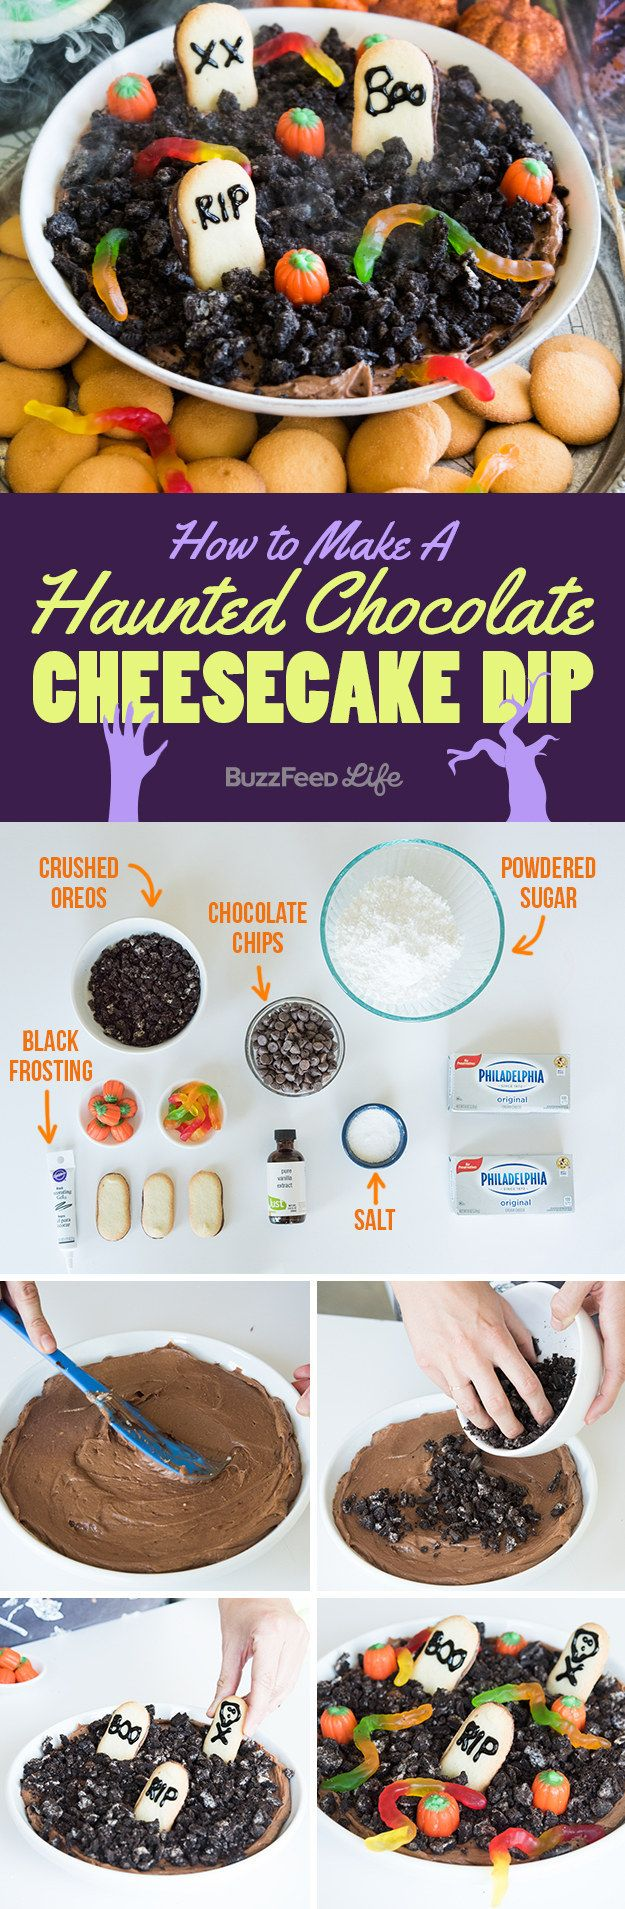 Happy dipping! | How To Make An Insanely Delicious Haunted Chocolate-Cheesecake Dip For Halloween